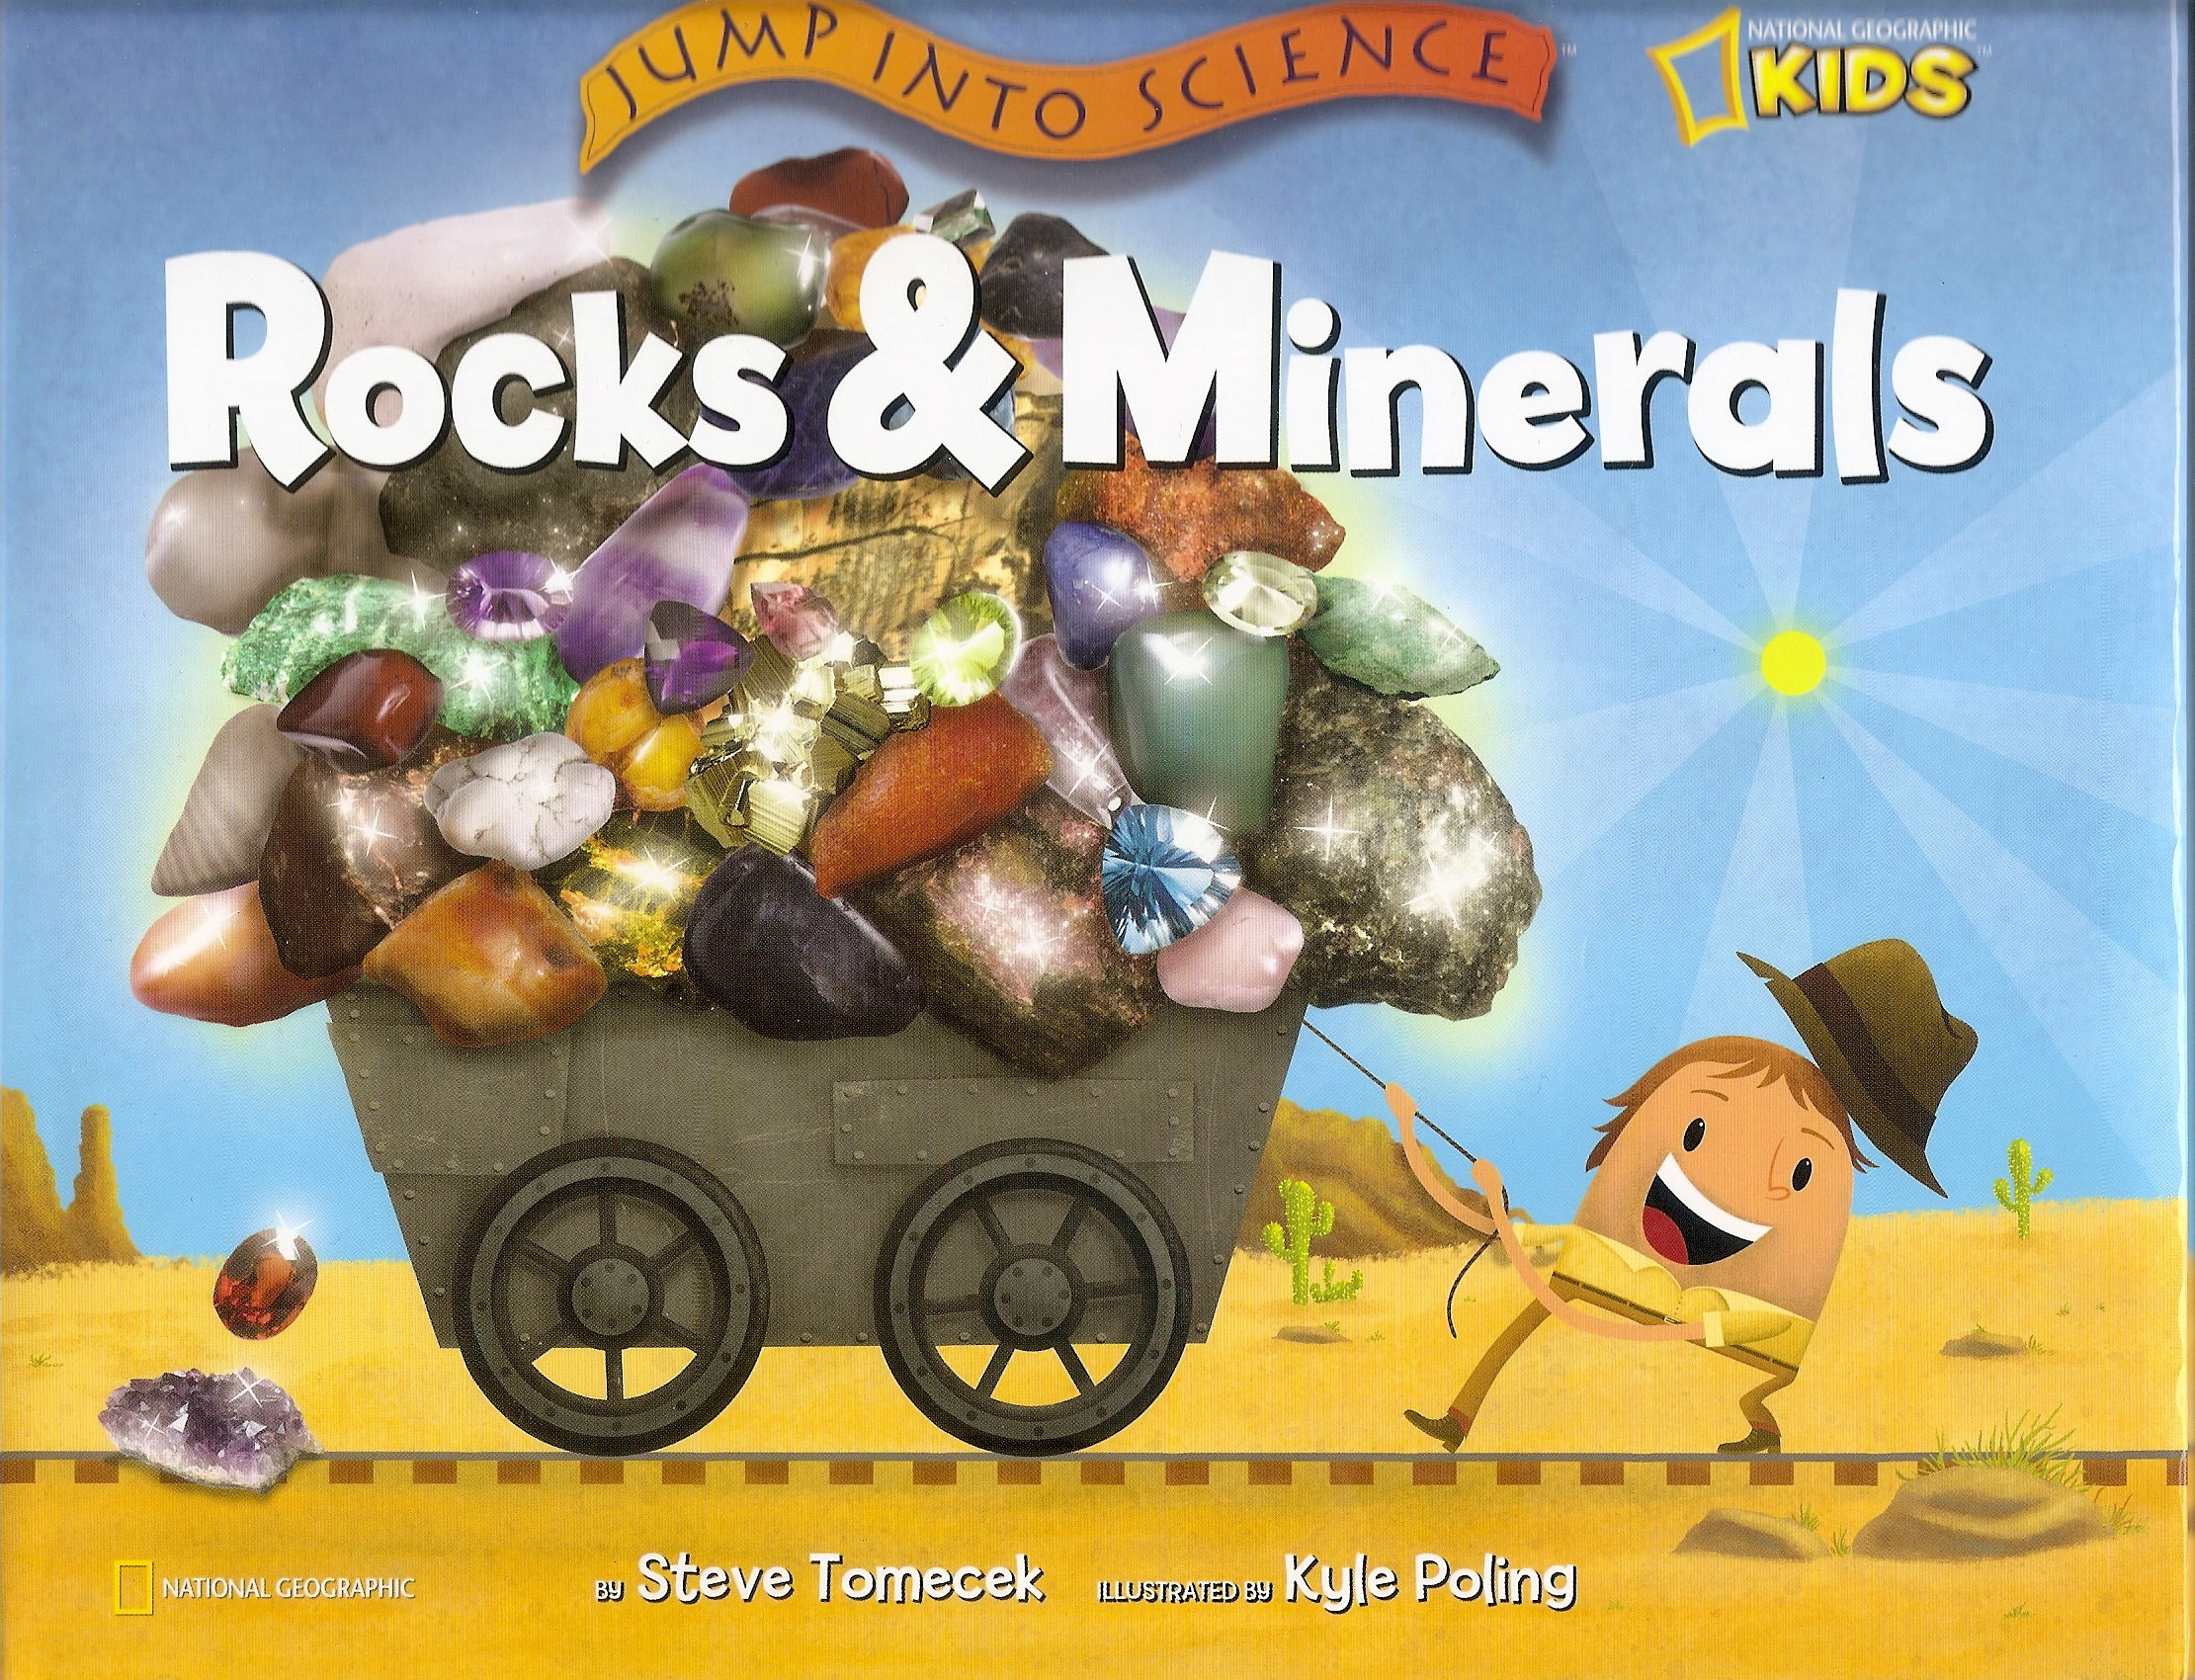 essays on rocks and minerals Essays on minerals we have found 500 essays on minerals minerals and rocks this is a trip report that was undertaken in devils washtub in inks lake national.